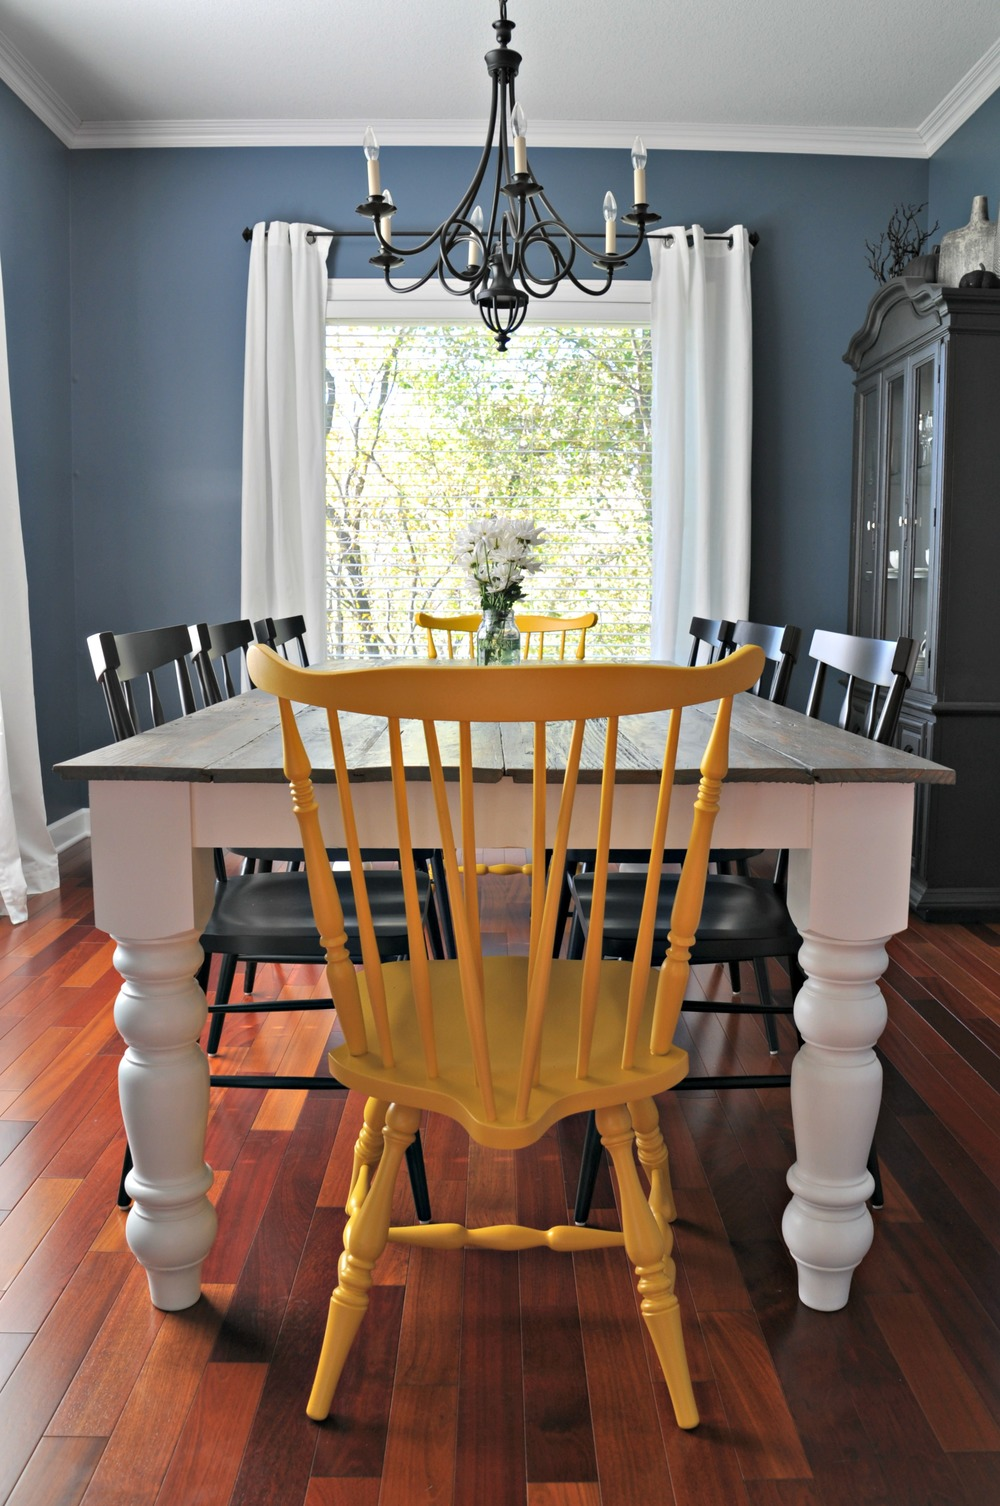 Rustic farmhouse dining room - Rustic Farmhouse Dining Table Decor And The Dog